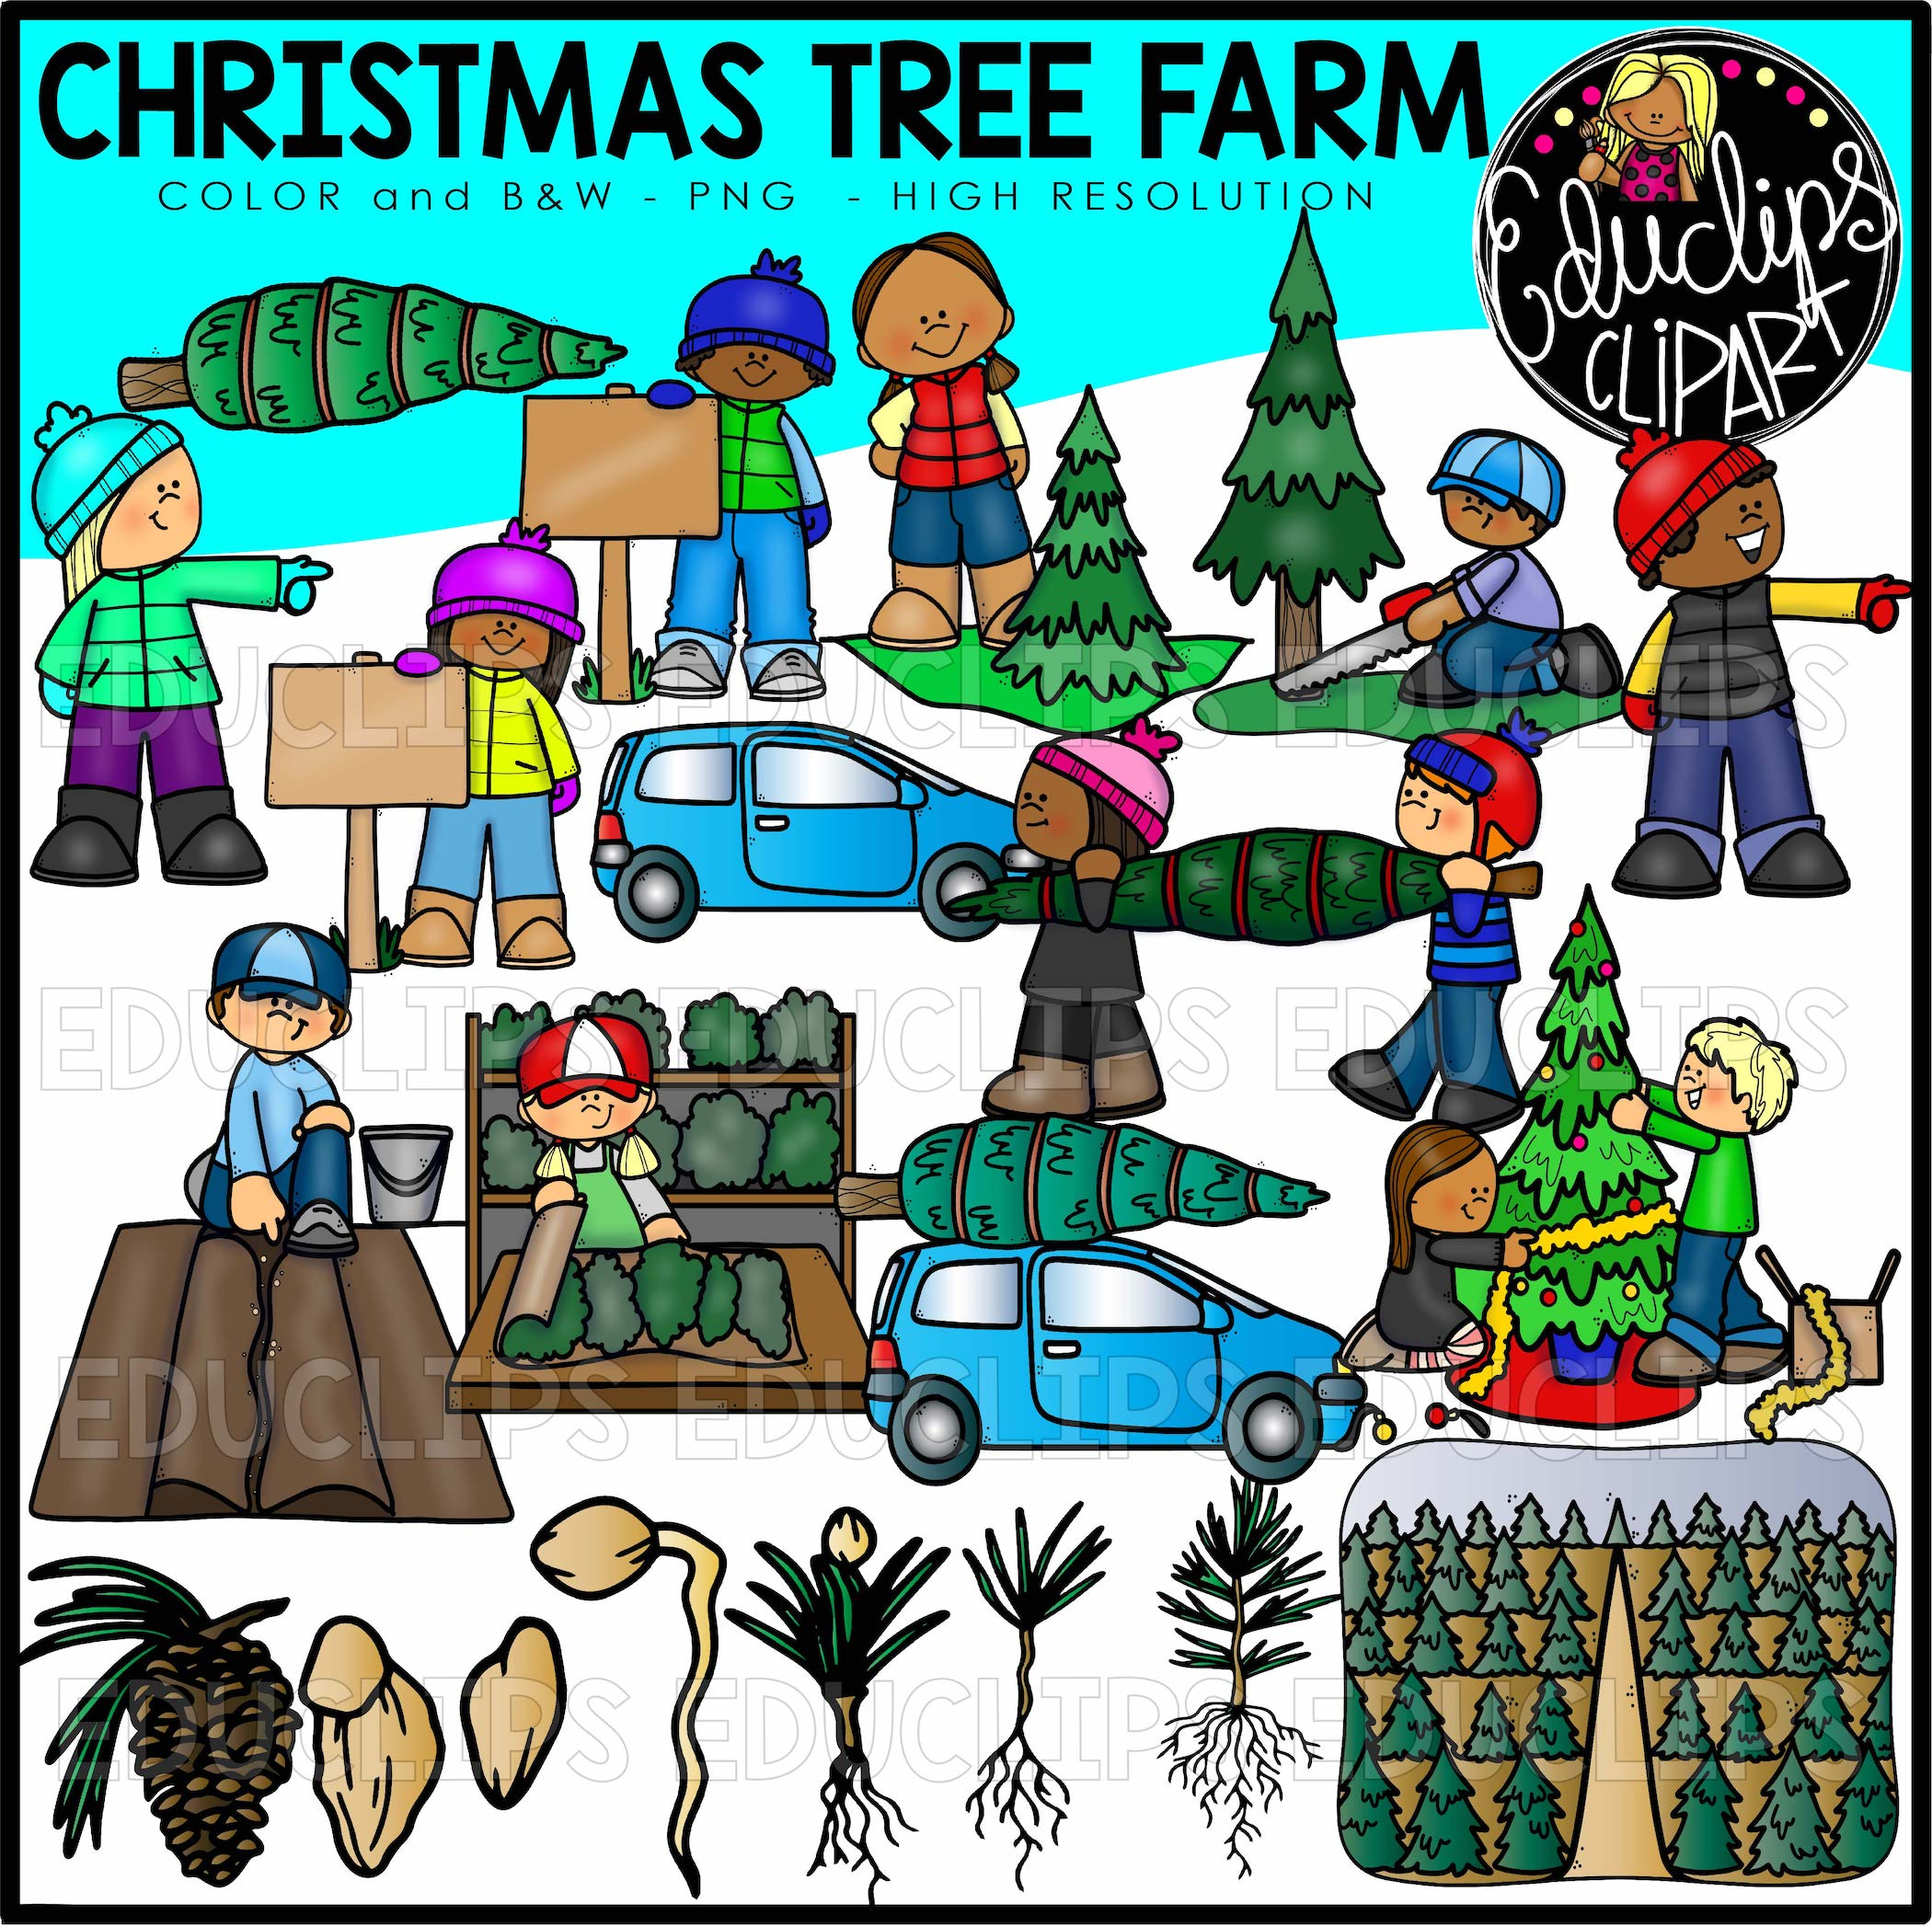 Christmas Tree Farm Clip Art Set Edu Clips The farm has a tall wooden fence around its southwestern entrance and houses a forest of large trees and apple trees, with red mushrooms and shaggy manes randomly dispersed on the ground throughout. christmas tree farm clip art set